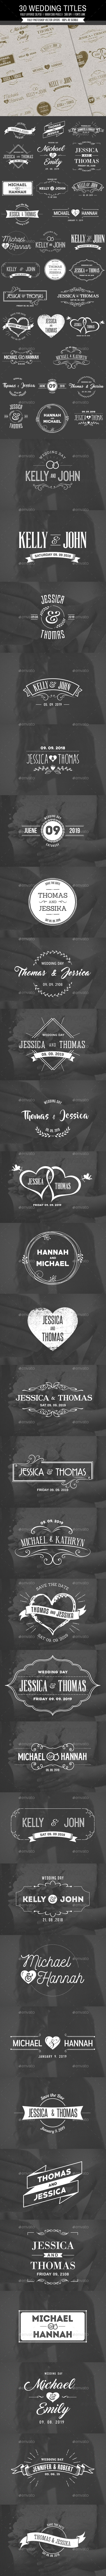 30 Wedding / Save the Date Titles - Templates PSD. Download here: http://graphicriver.net/item/30-wedding-save-the-date-titles/16869977?ref=ksioks